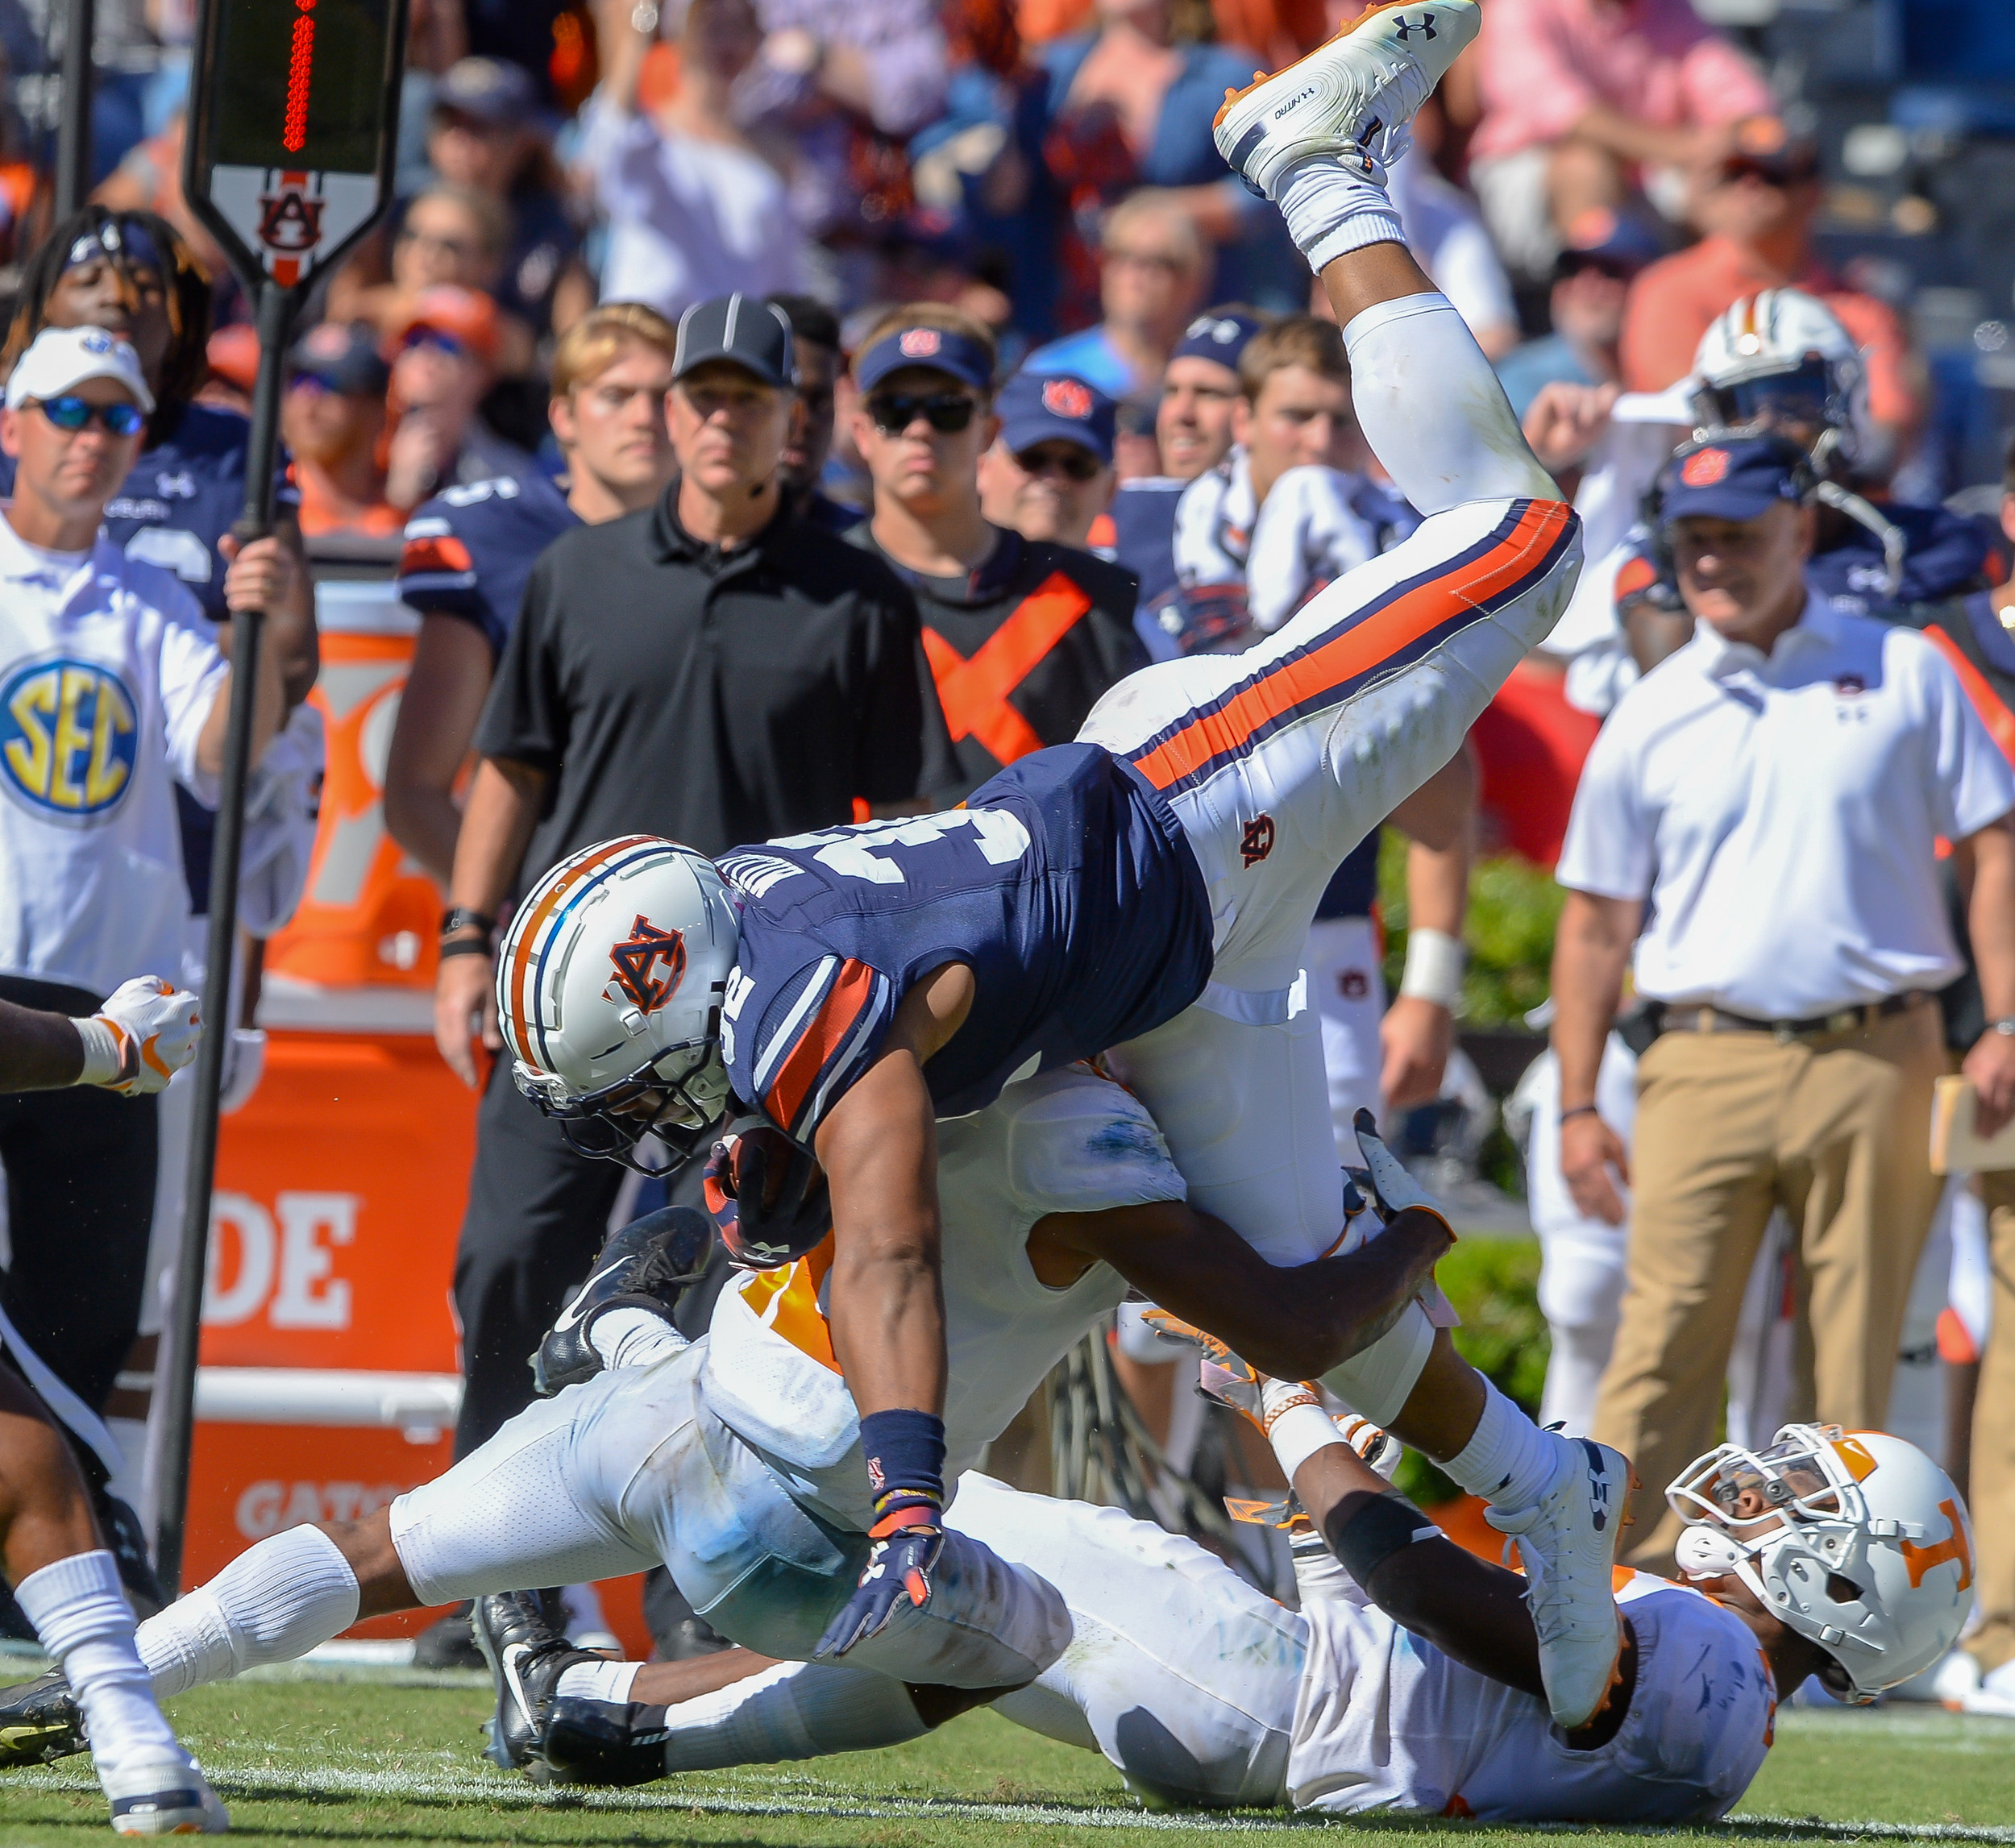 Tennessee Volunteers defensive back Shawn Shamburger (12) upends Auburn Tigers running back Malik Miller (32) during the second half of Saturday's game, at Jordan-Hare Stadium in Auburn, AL. Daily Mountain Eagle -  Jeff Johnsey